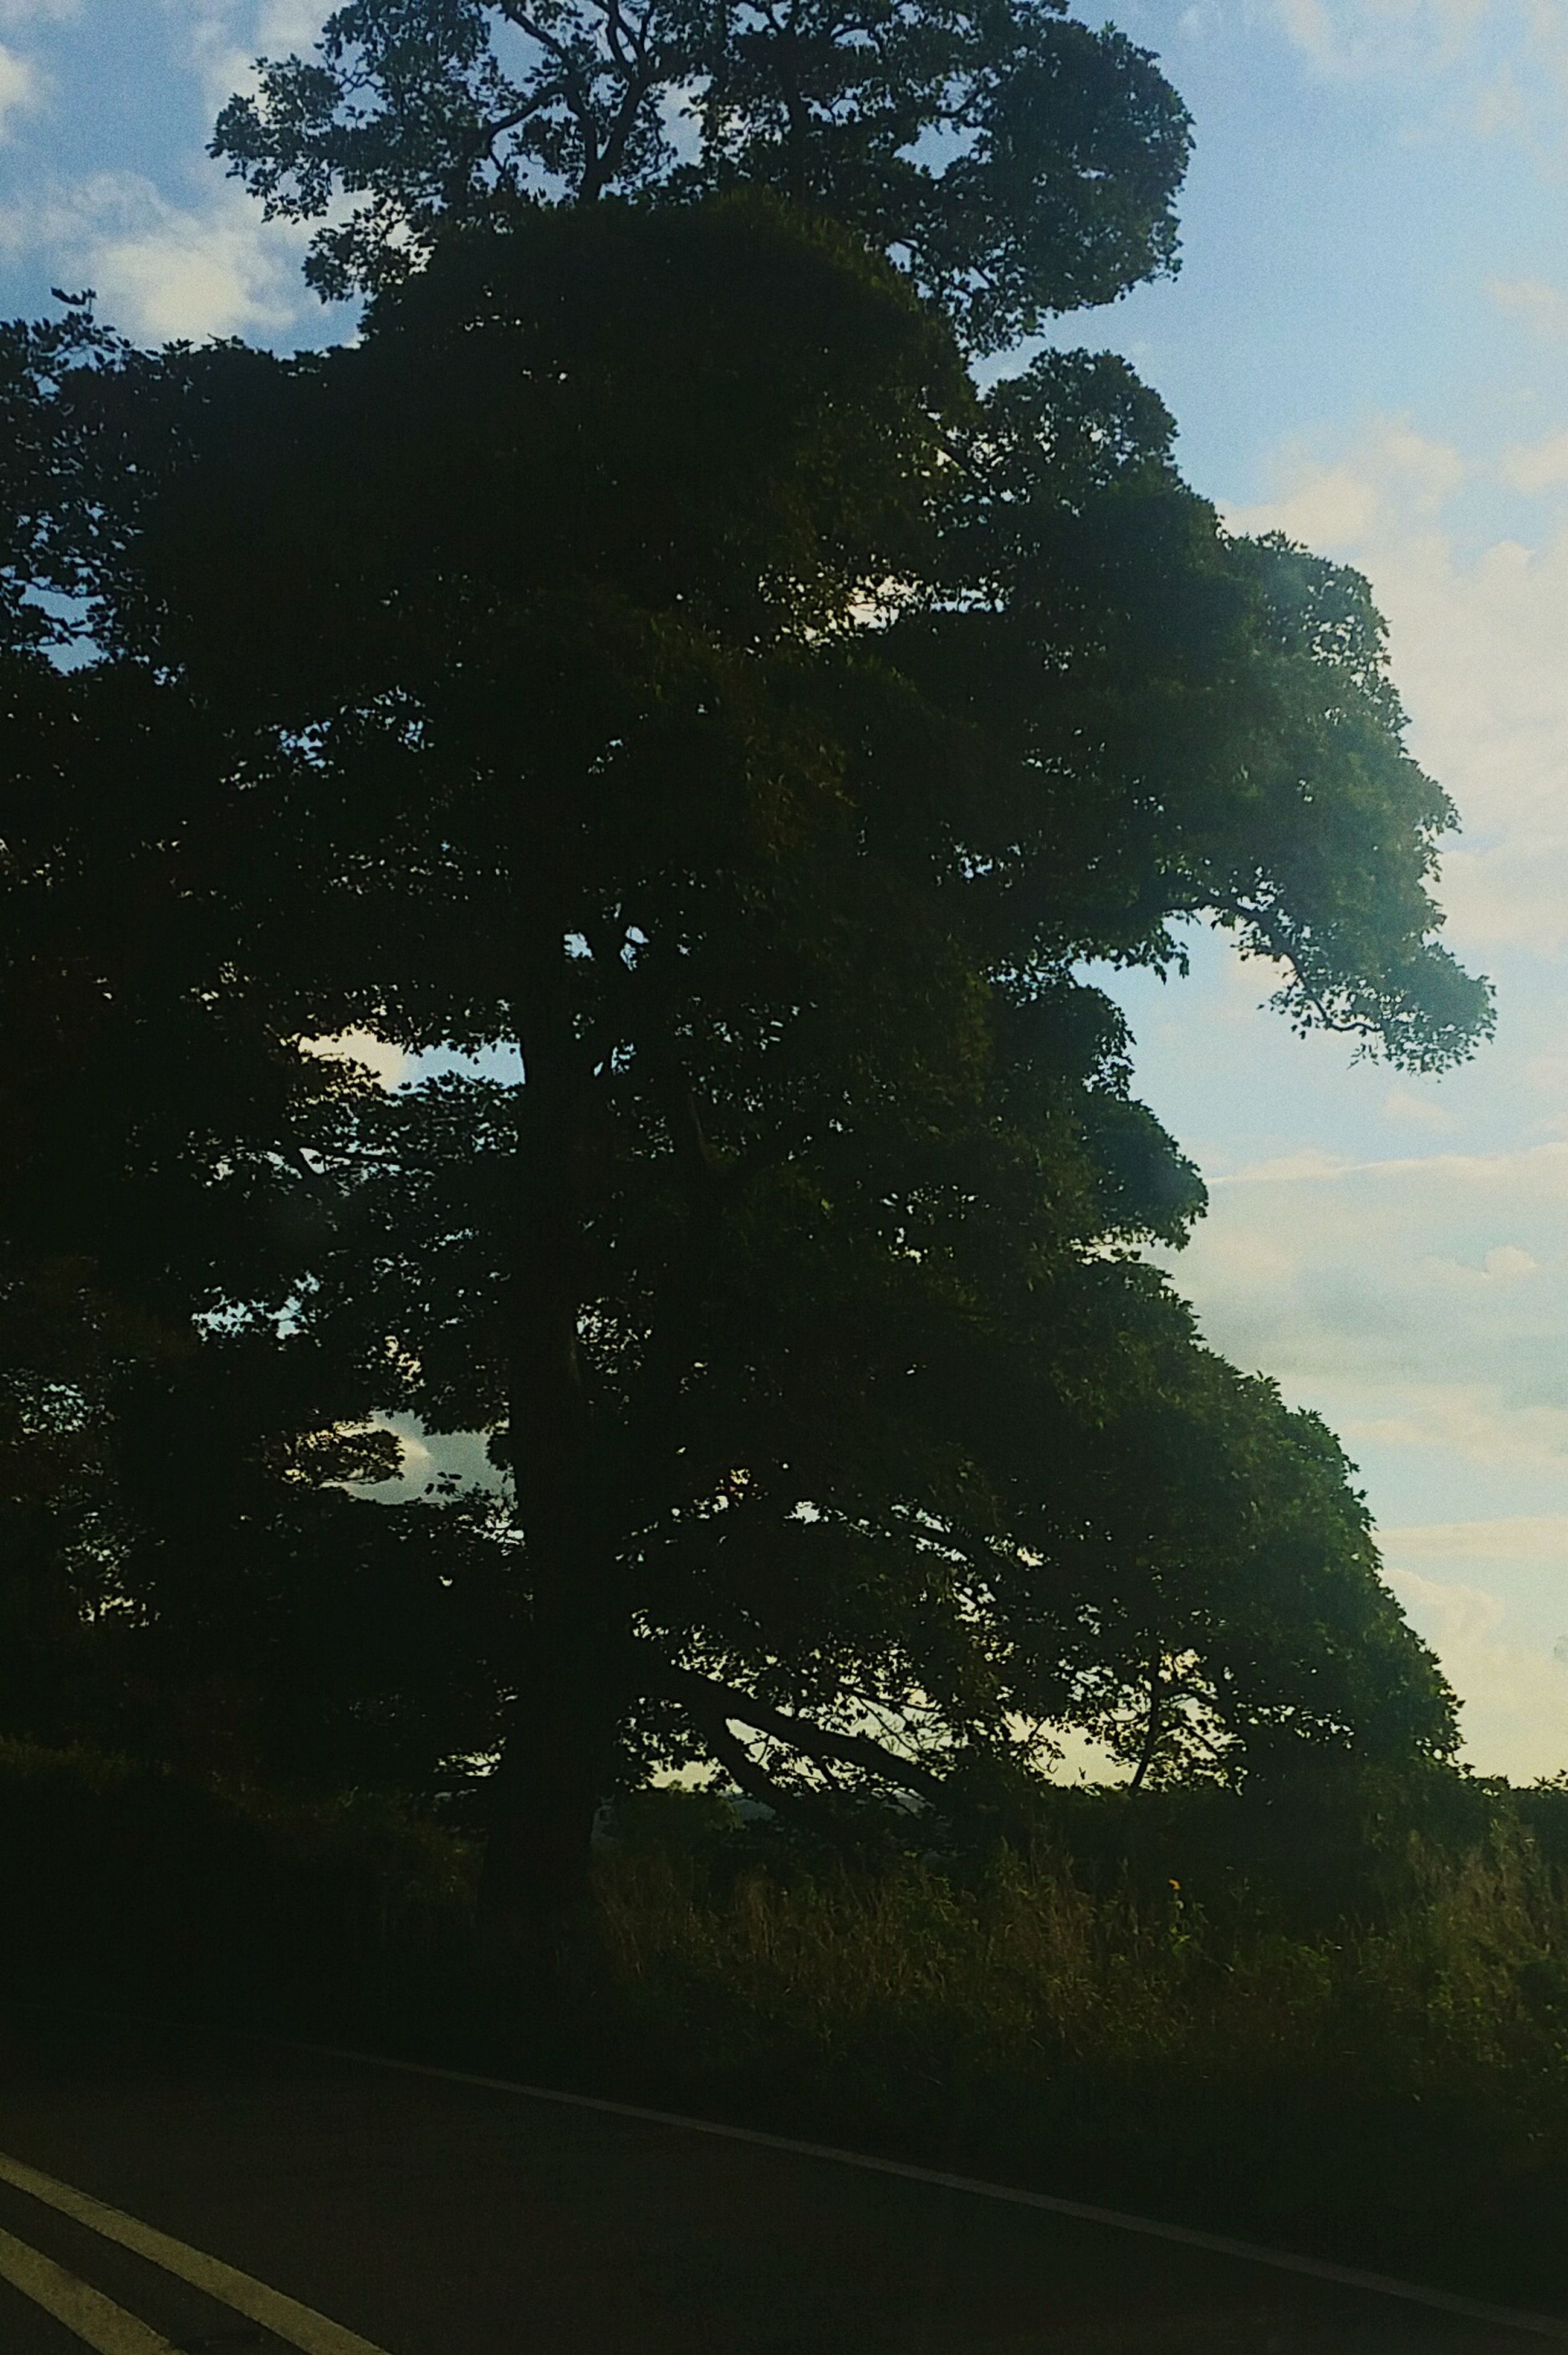 tree, tranquil scene, tranquility, silhouette, growth, sky, scenics, nature, non-urban scene, outdoors, beauty in nature, dark, day, remote, solitude, tall - high, no people, outline, pine tree